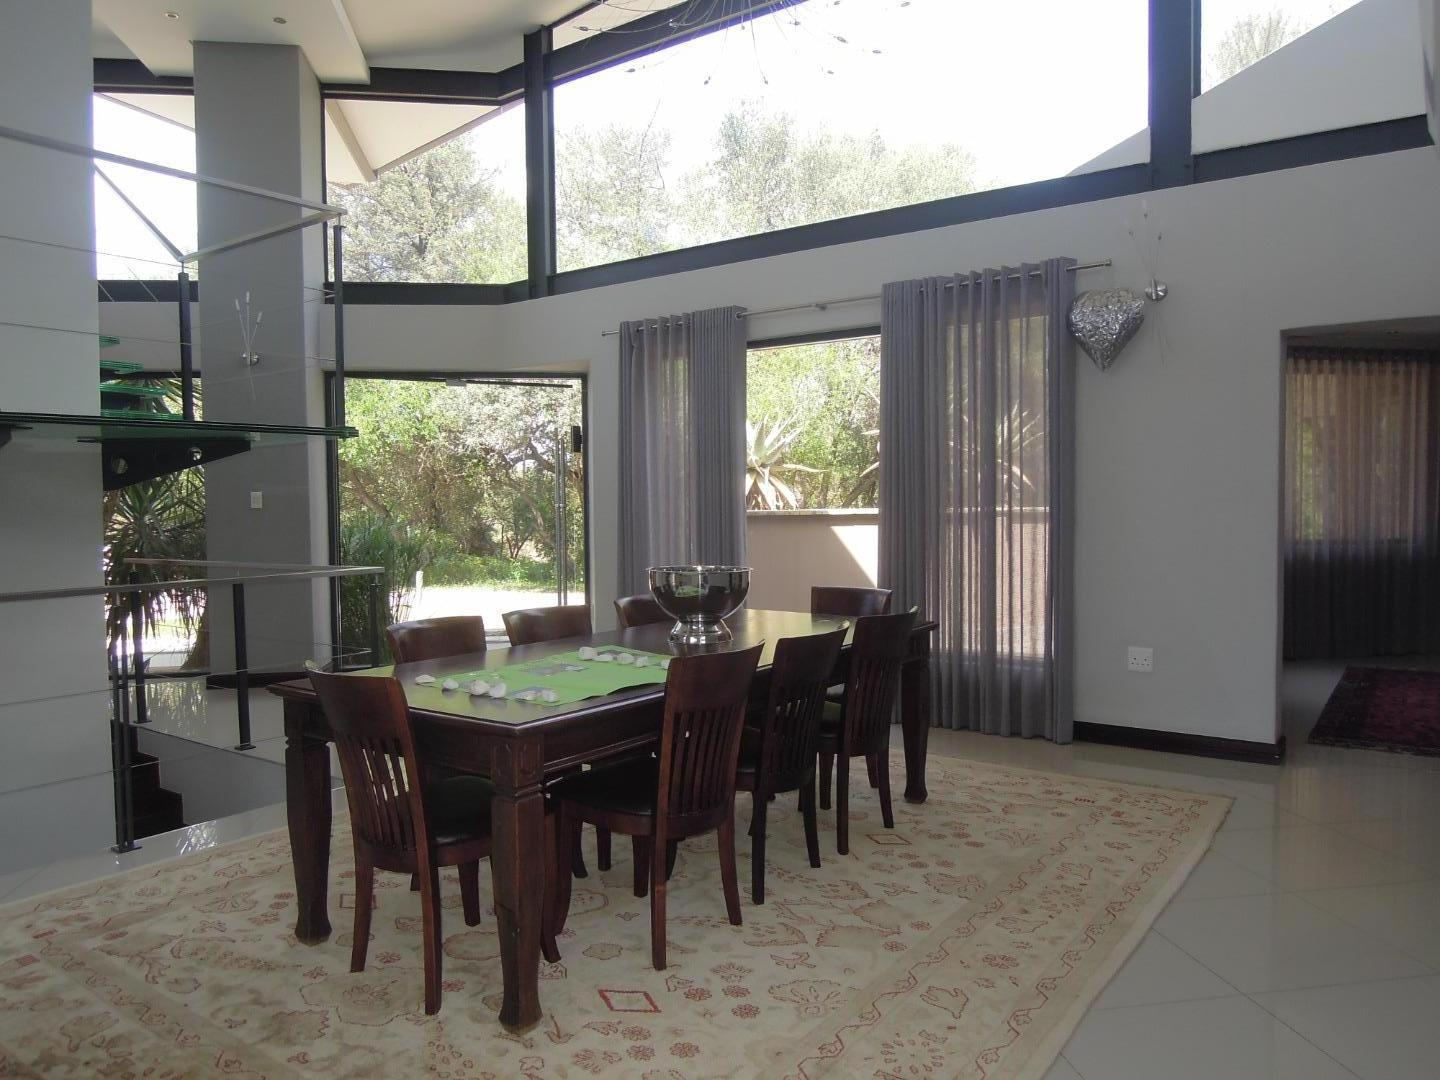 5 Bedroom House For Sale in Lion Park